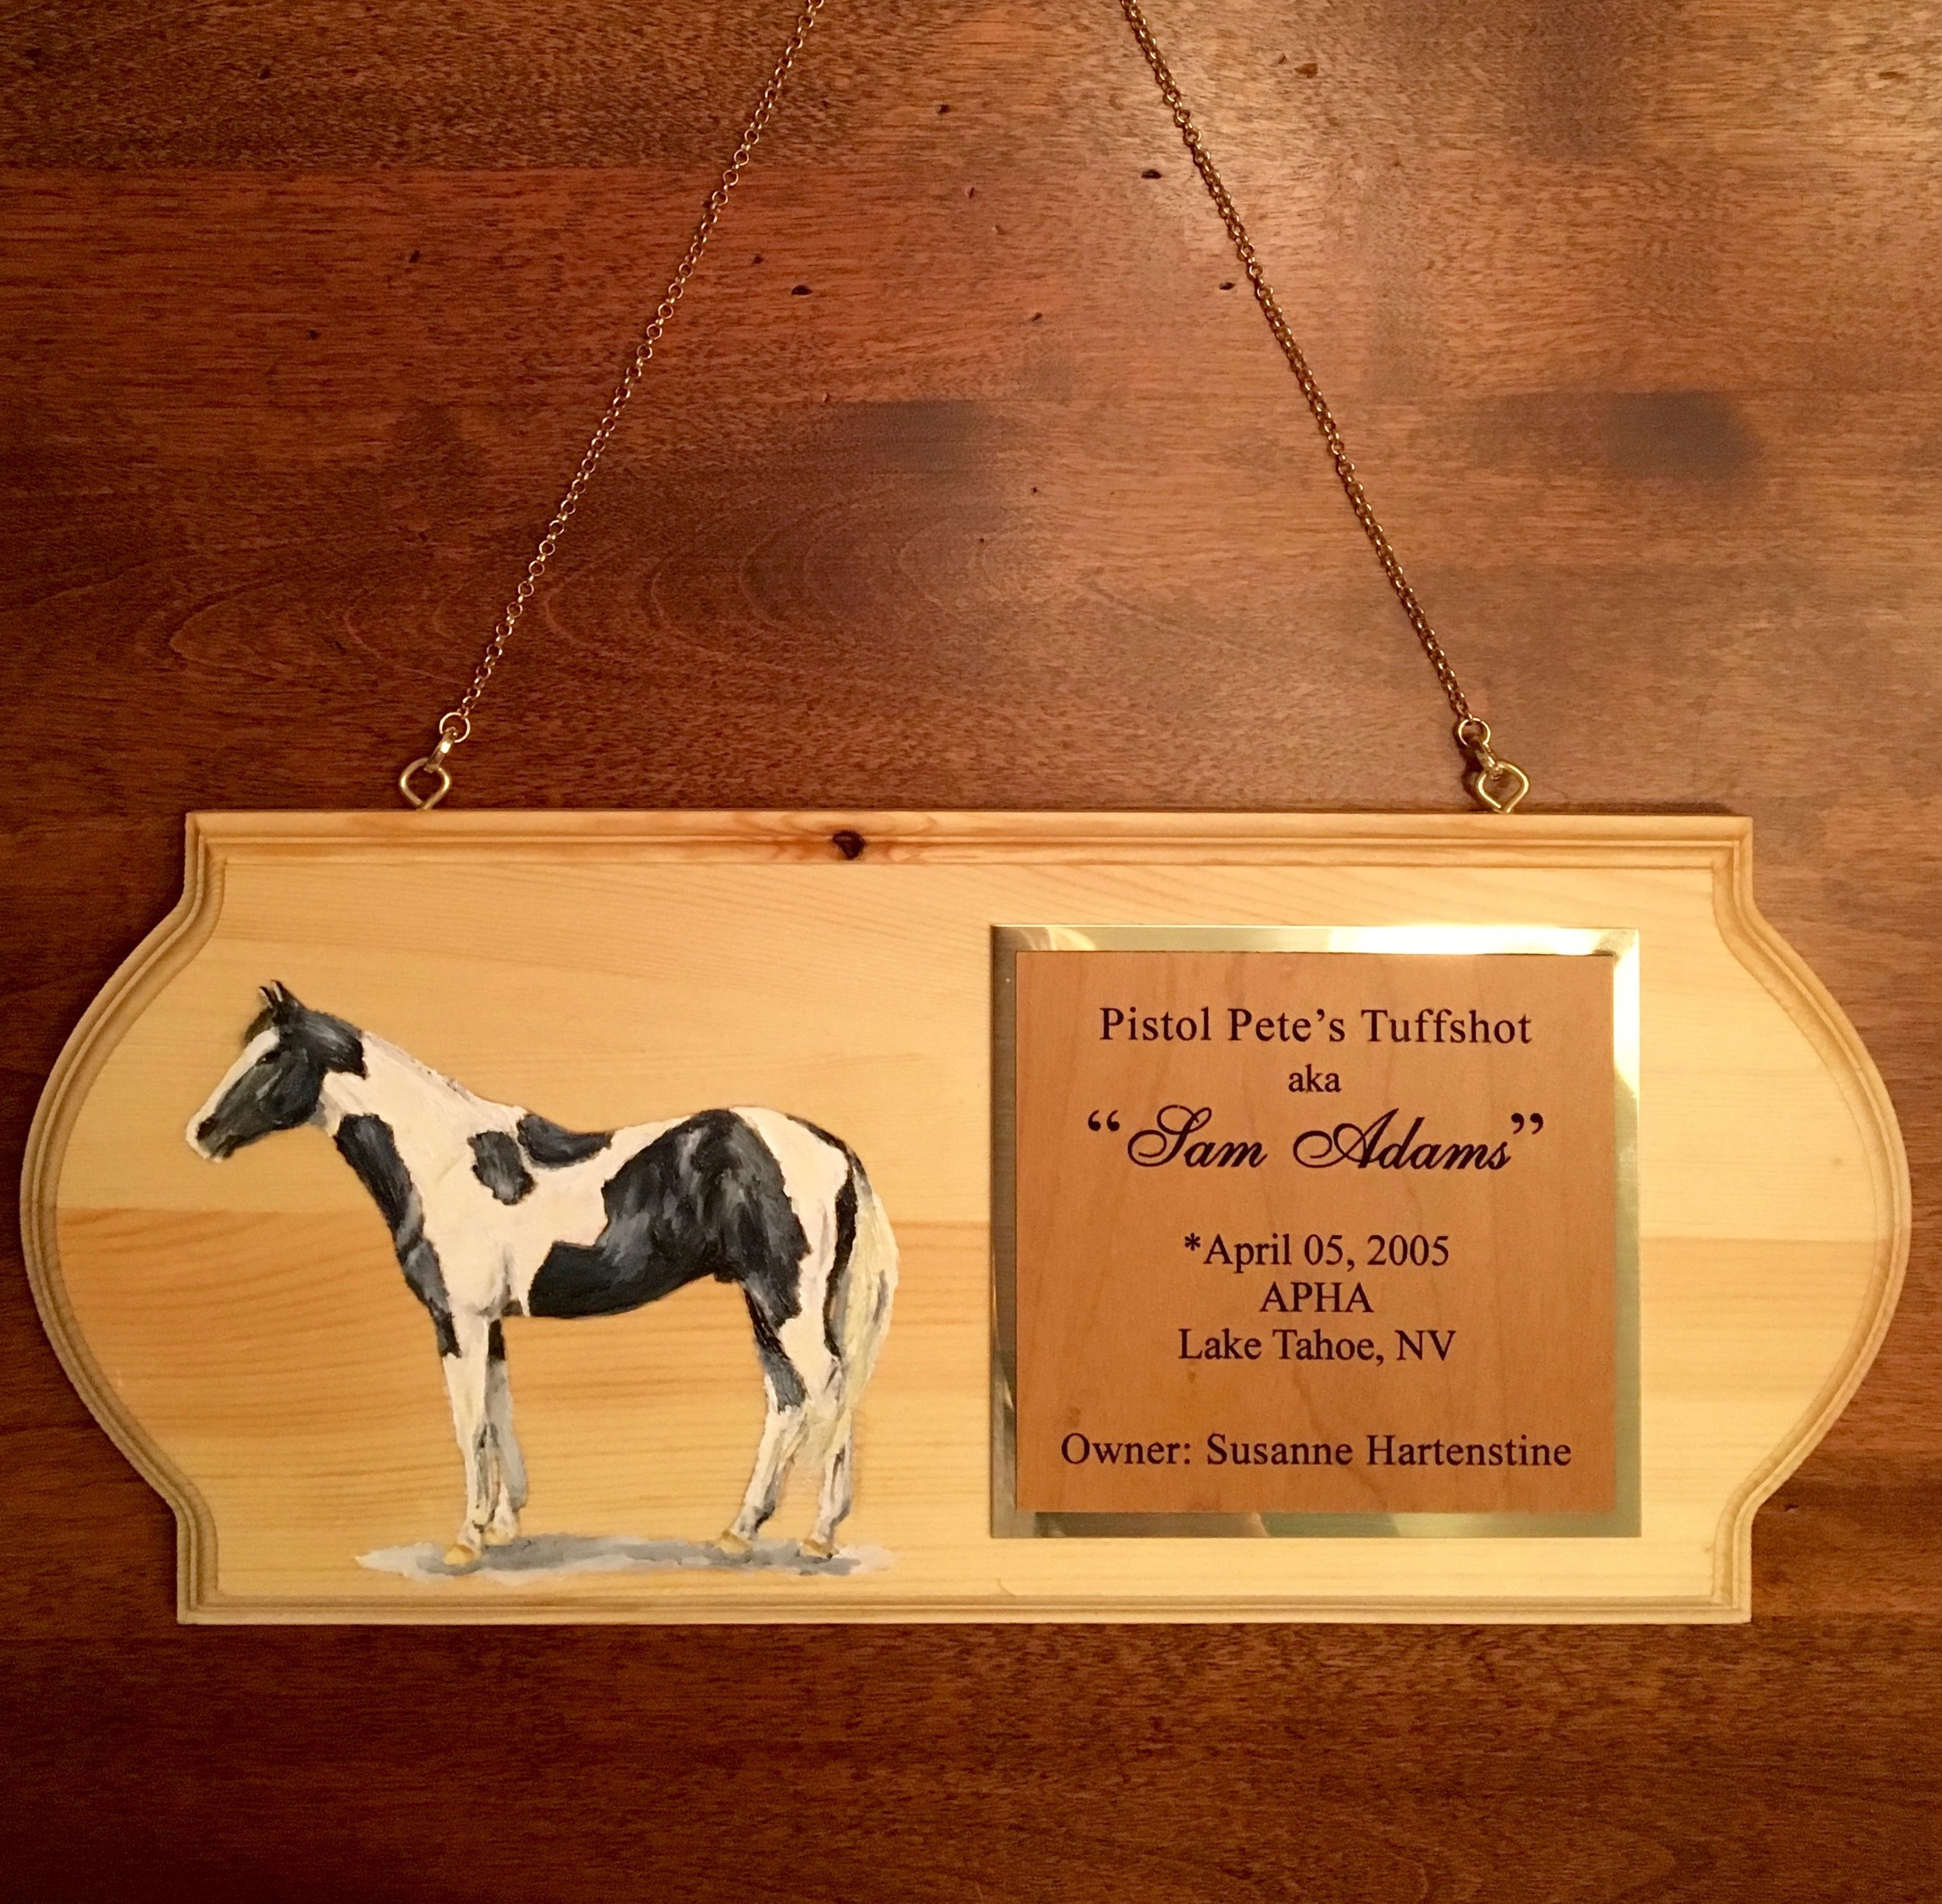 the medium Pine Plaque is a more rustic option. The name plaque is also a brass/wood combination.